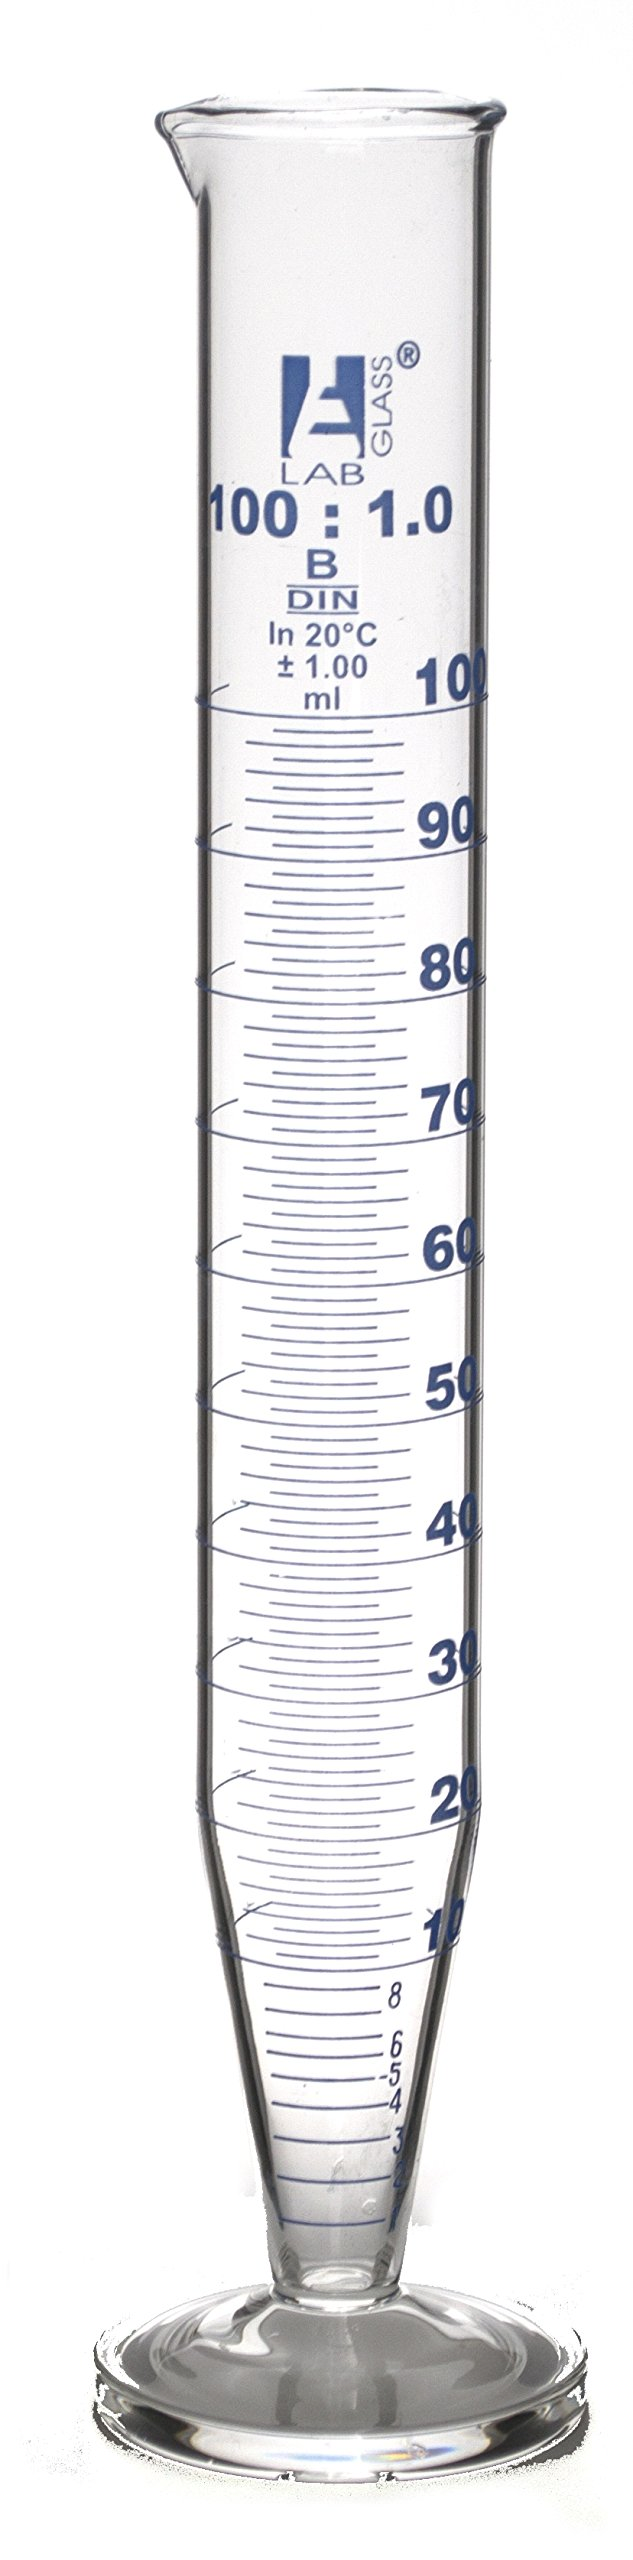 100mL Crow Receiver for Distillate in Oil and Tar Tests, Borosilicate 3.3 Glass, Class B (10'' Height) - Eisco Labs